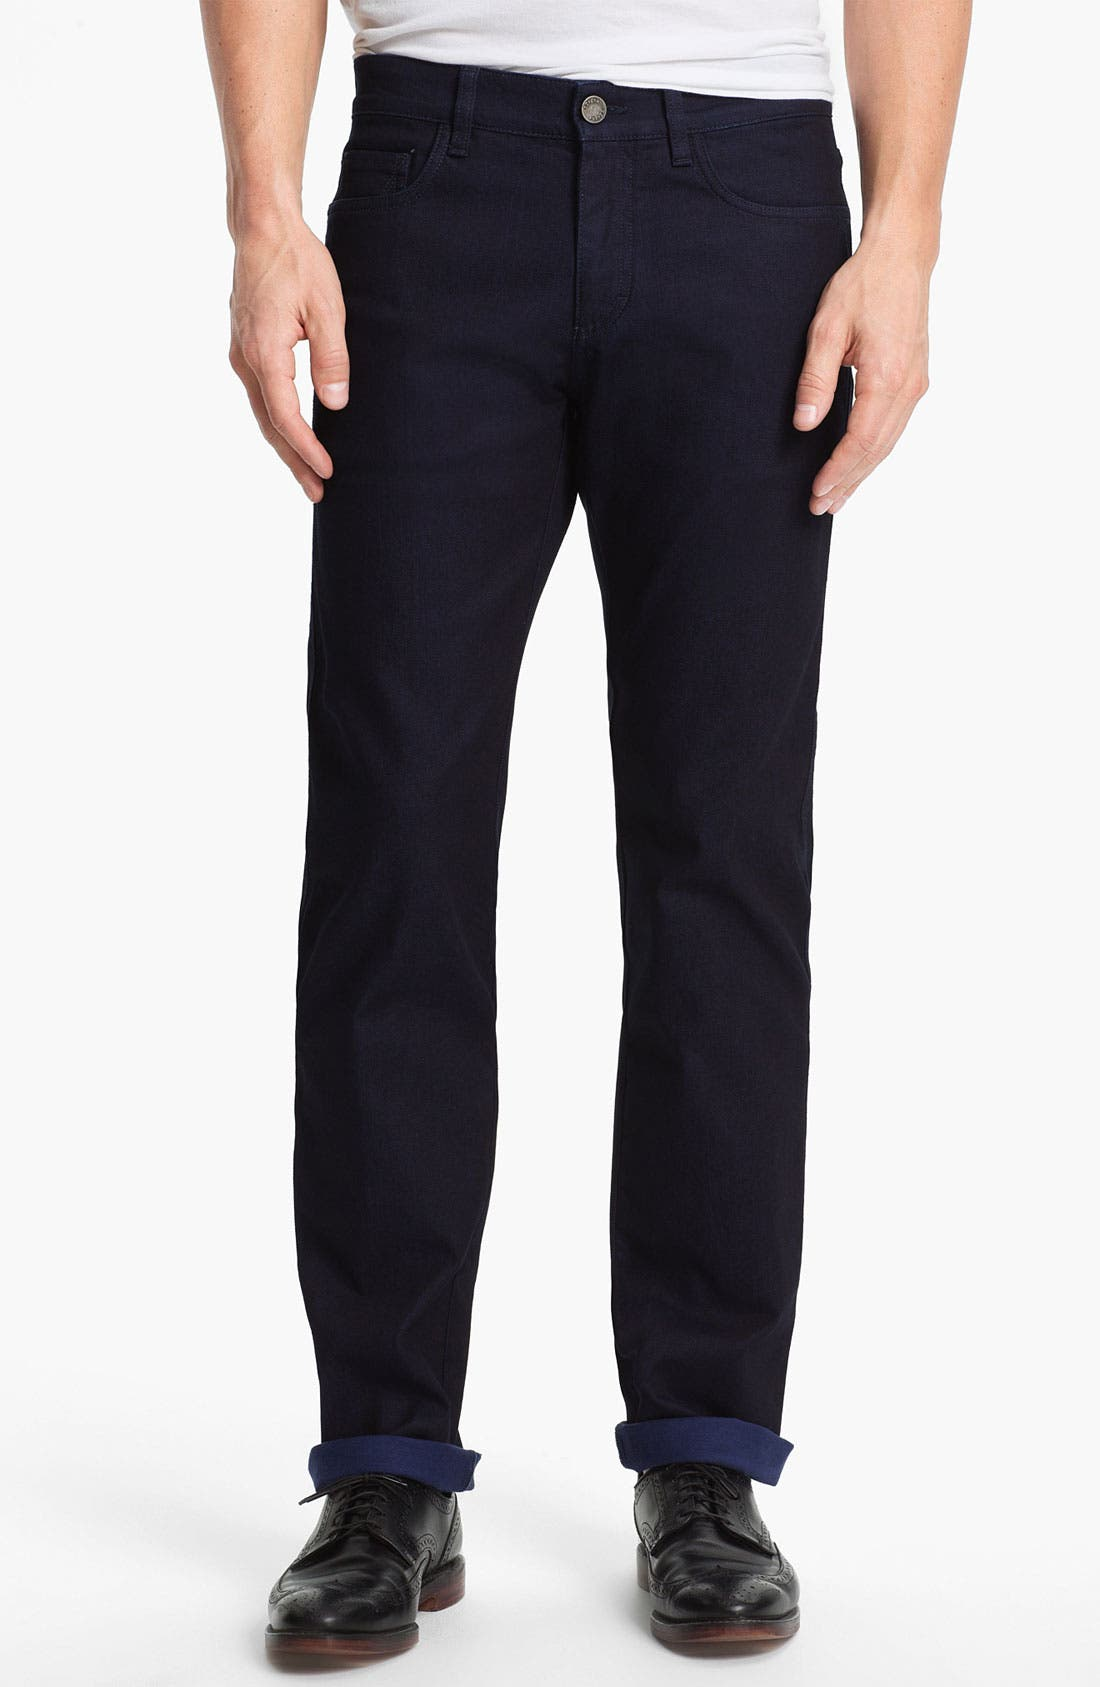 Alternate Image 1 Selected - Z Zegna Straight Leg Jeans (Navy)